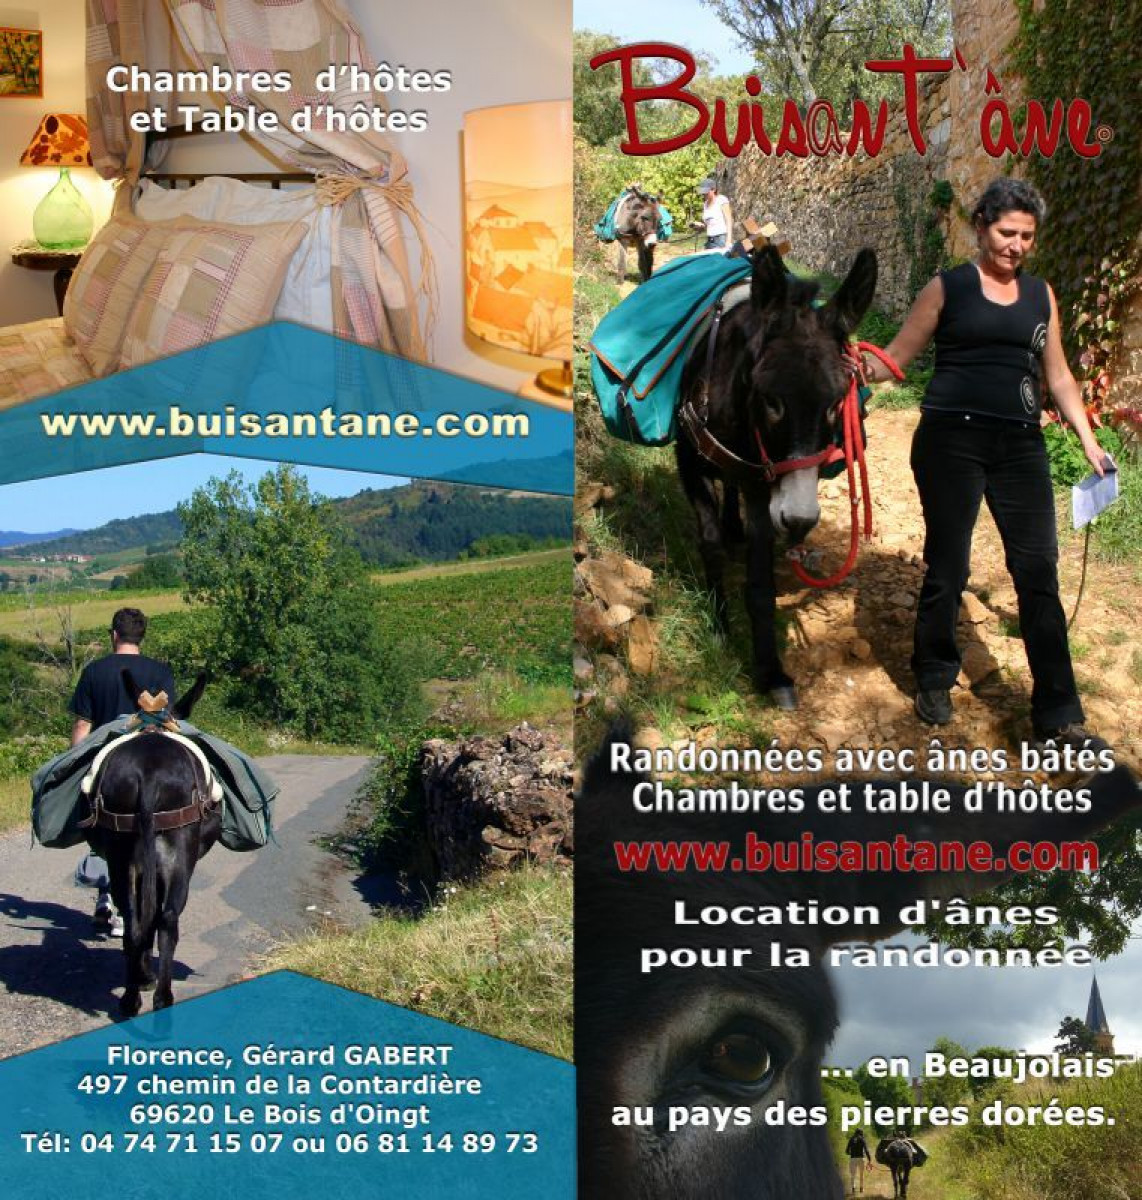 Buisant'âne, Guest house and pack donkeys